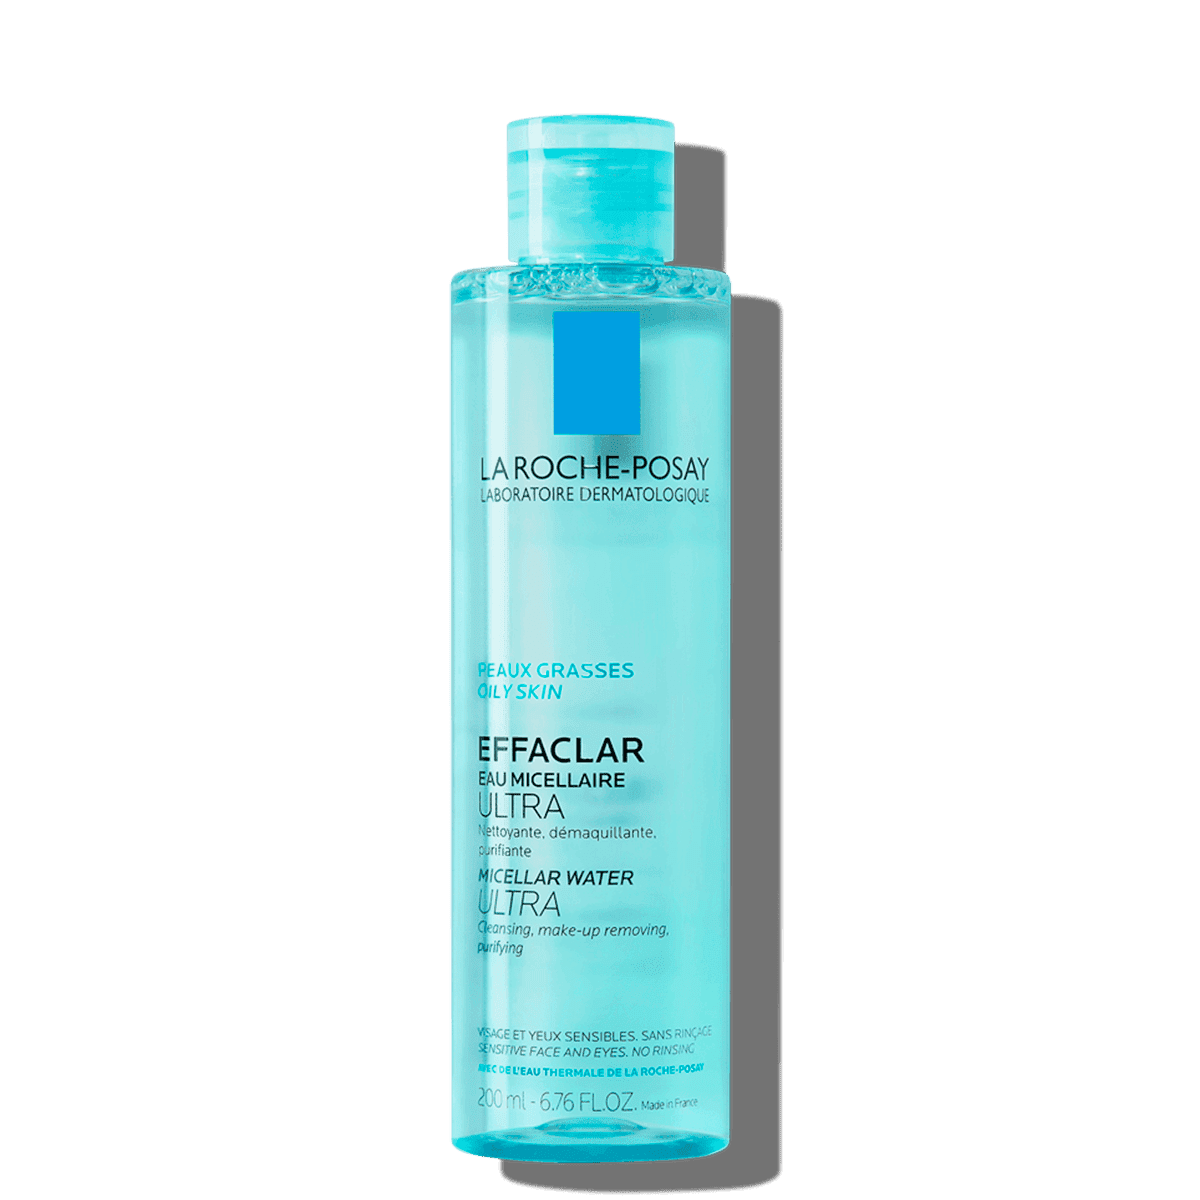 Effaclar Micellar Water Ultra 200ml Purifying Make Up Removing Oily Skin